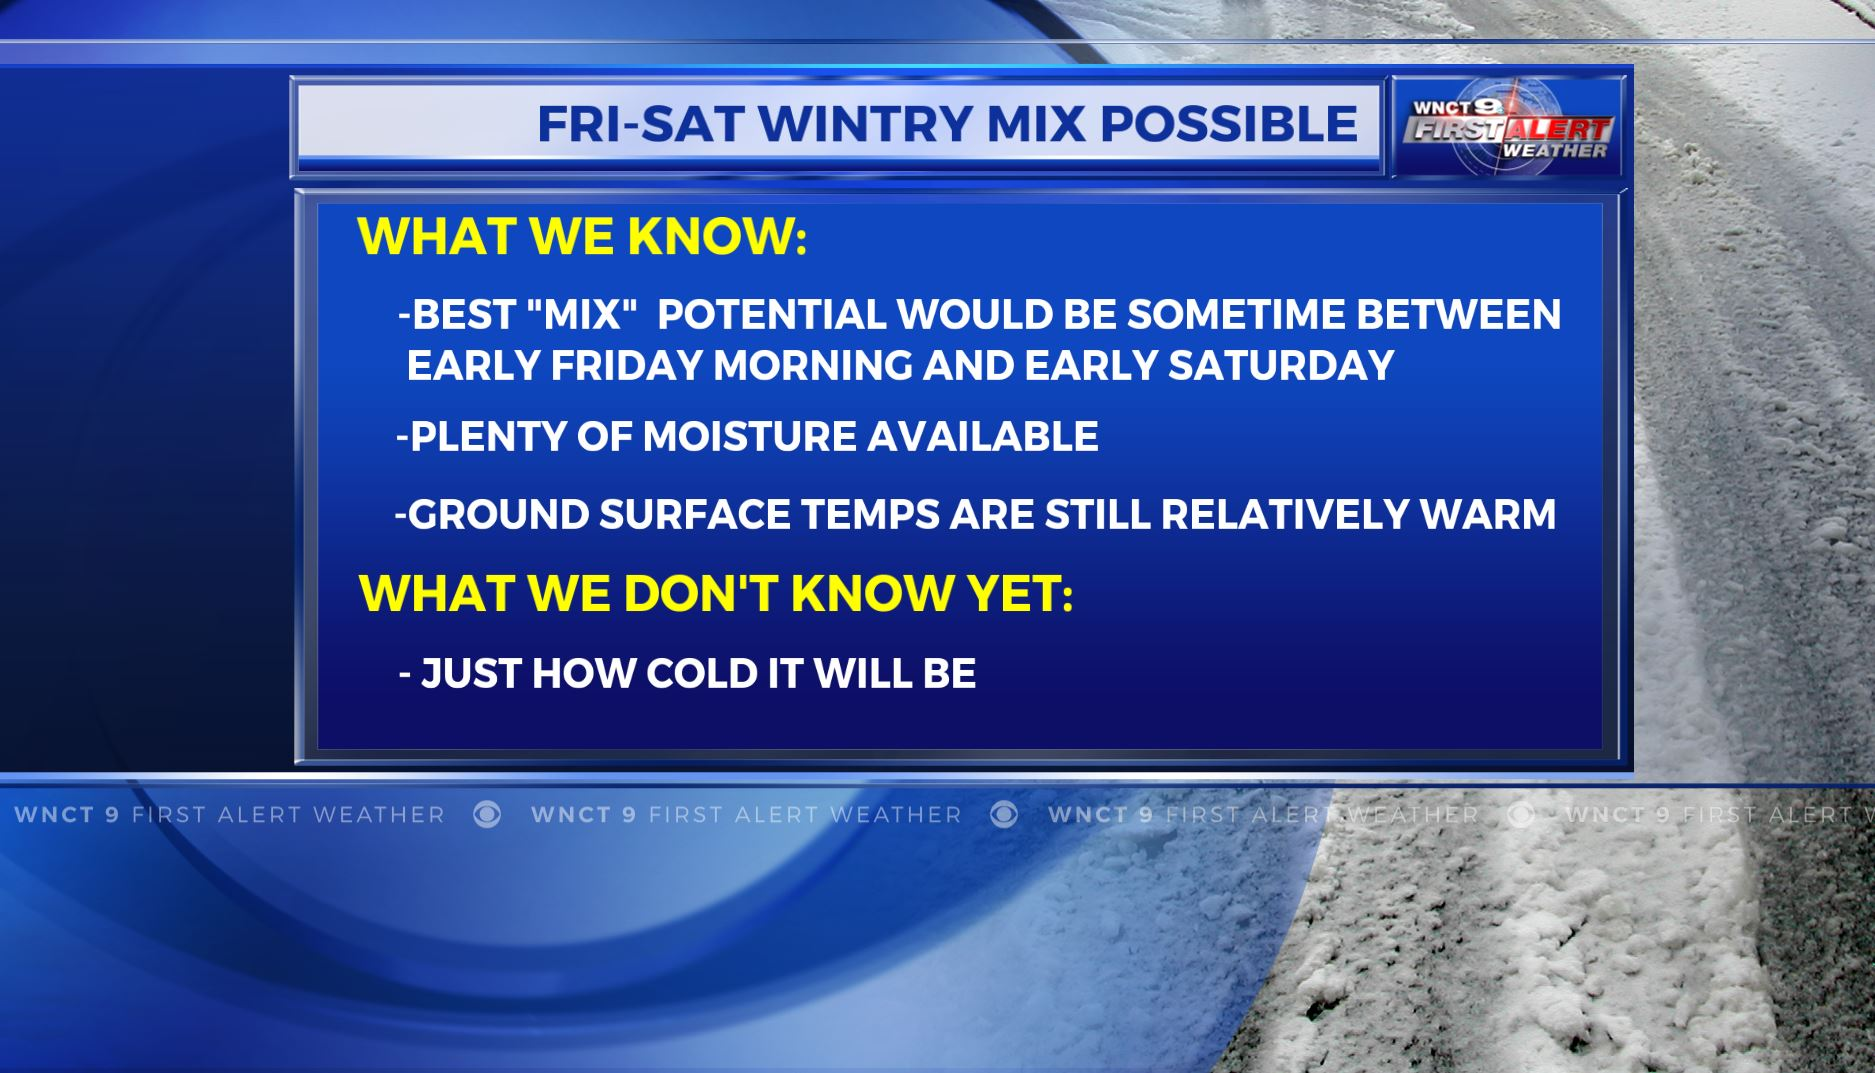 Wintry mix possible overnight; Flurries on Friday morning